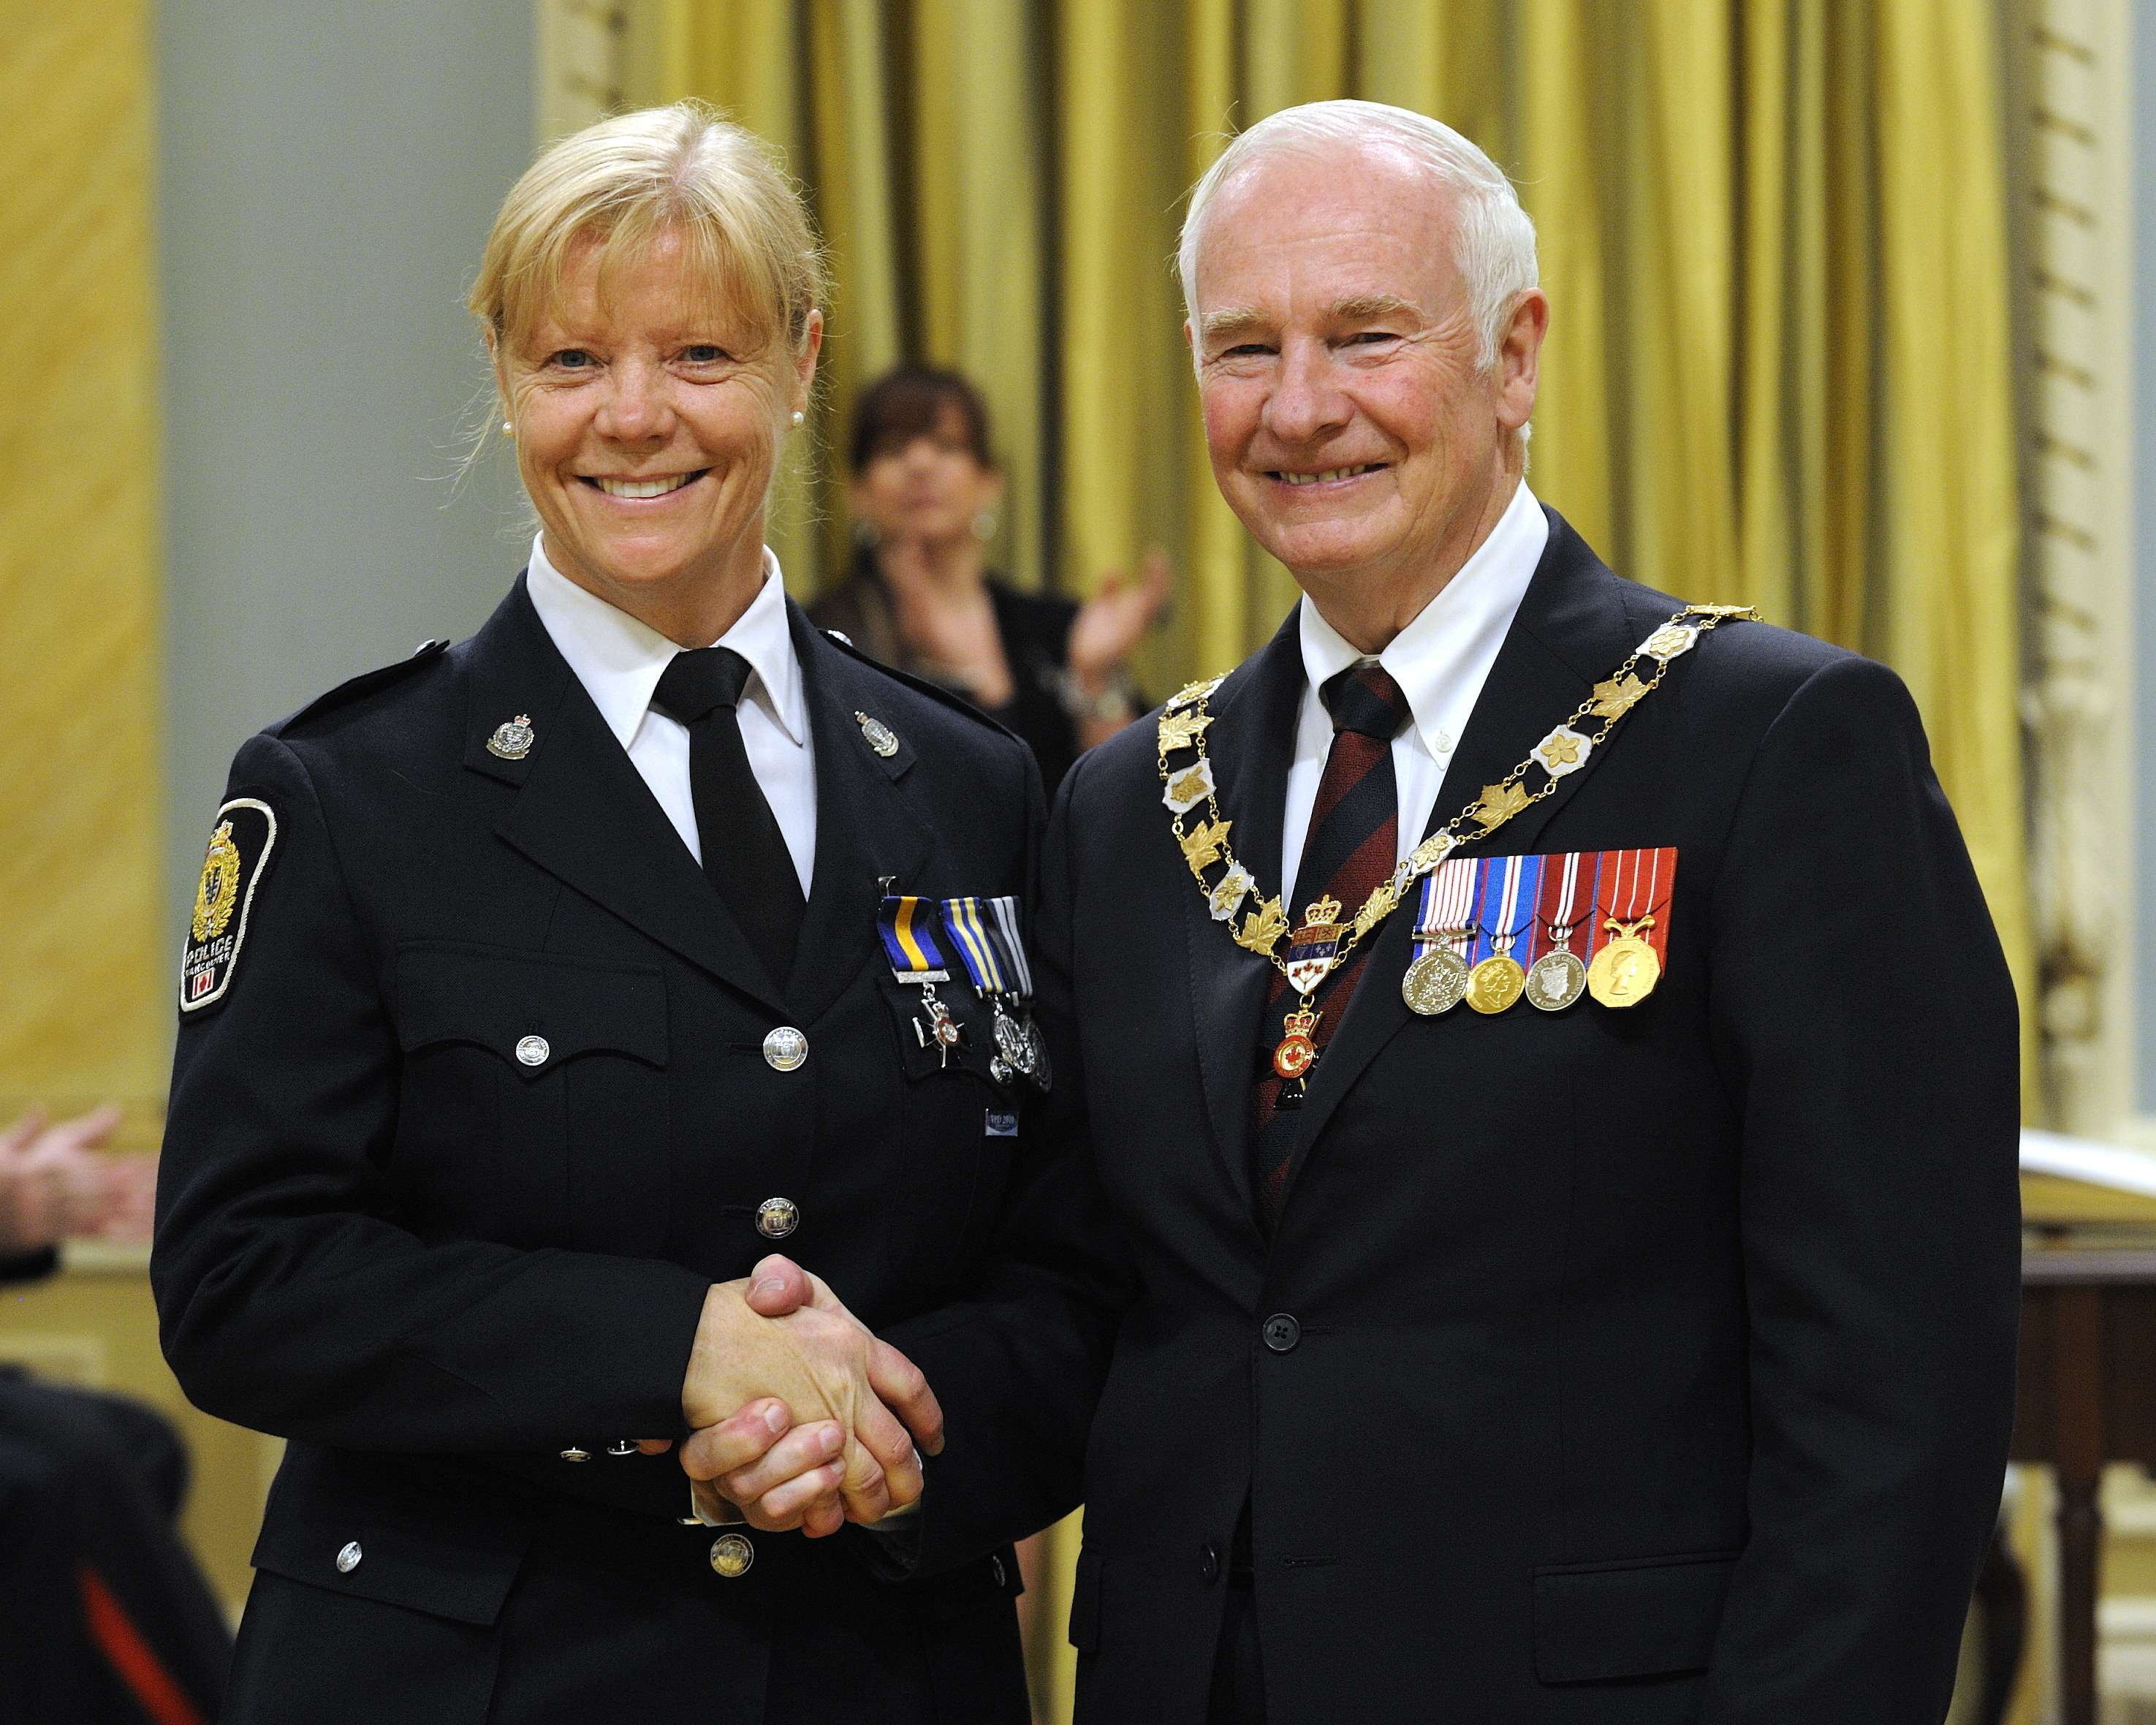 His Excellency presented the Order of Merit of the Police Forces at the Member level (M.O.M.) to Constable Linda A. Malcolm, M.O.M., of the Vancouver Police Department, British Columbia.